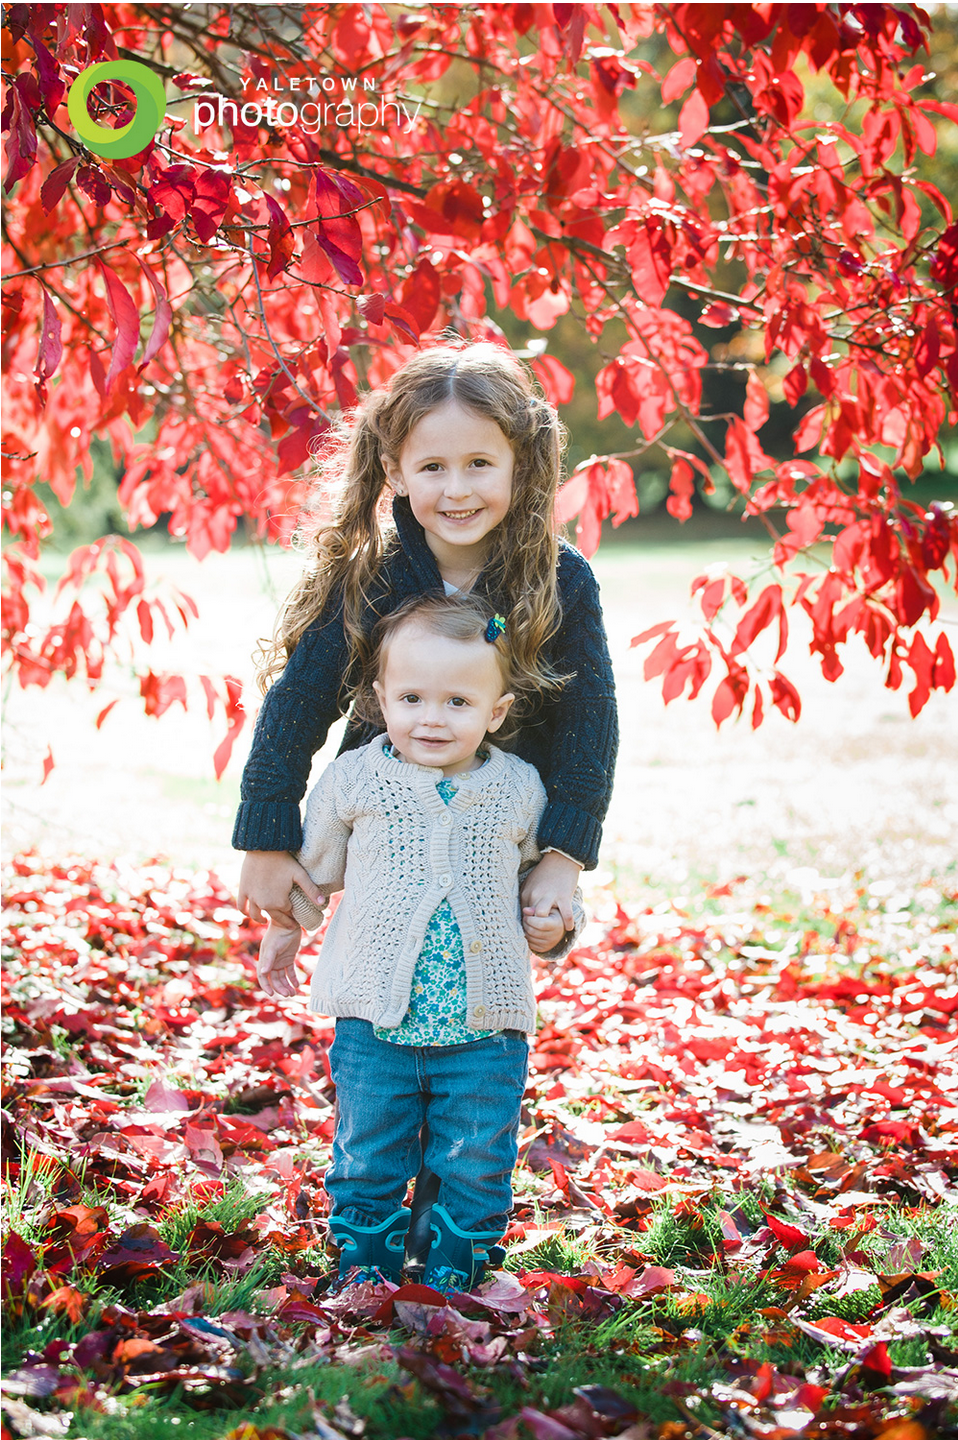 sisters-vancouvouer-family-photos-kids-photography-fall-leaves-yaletown-photography-photo_04